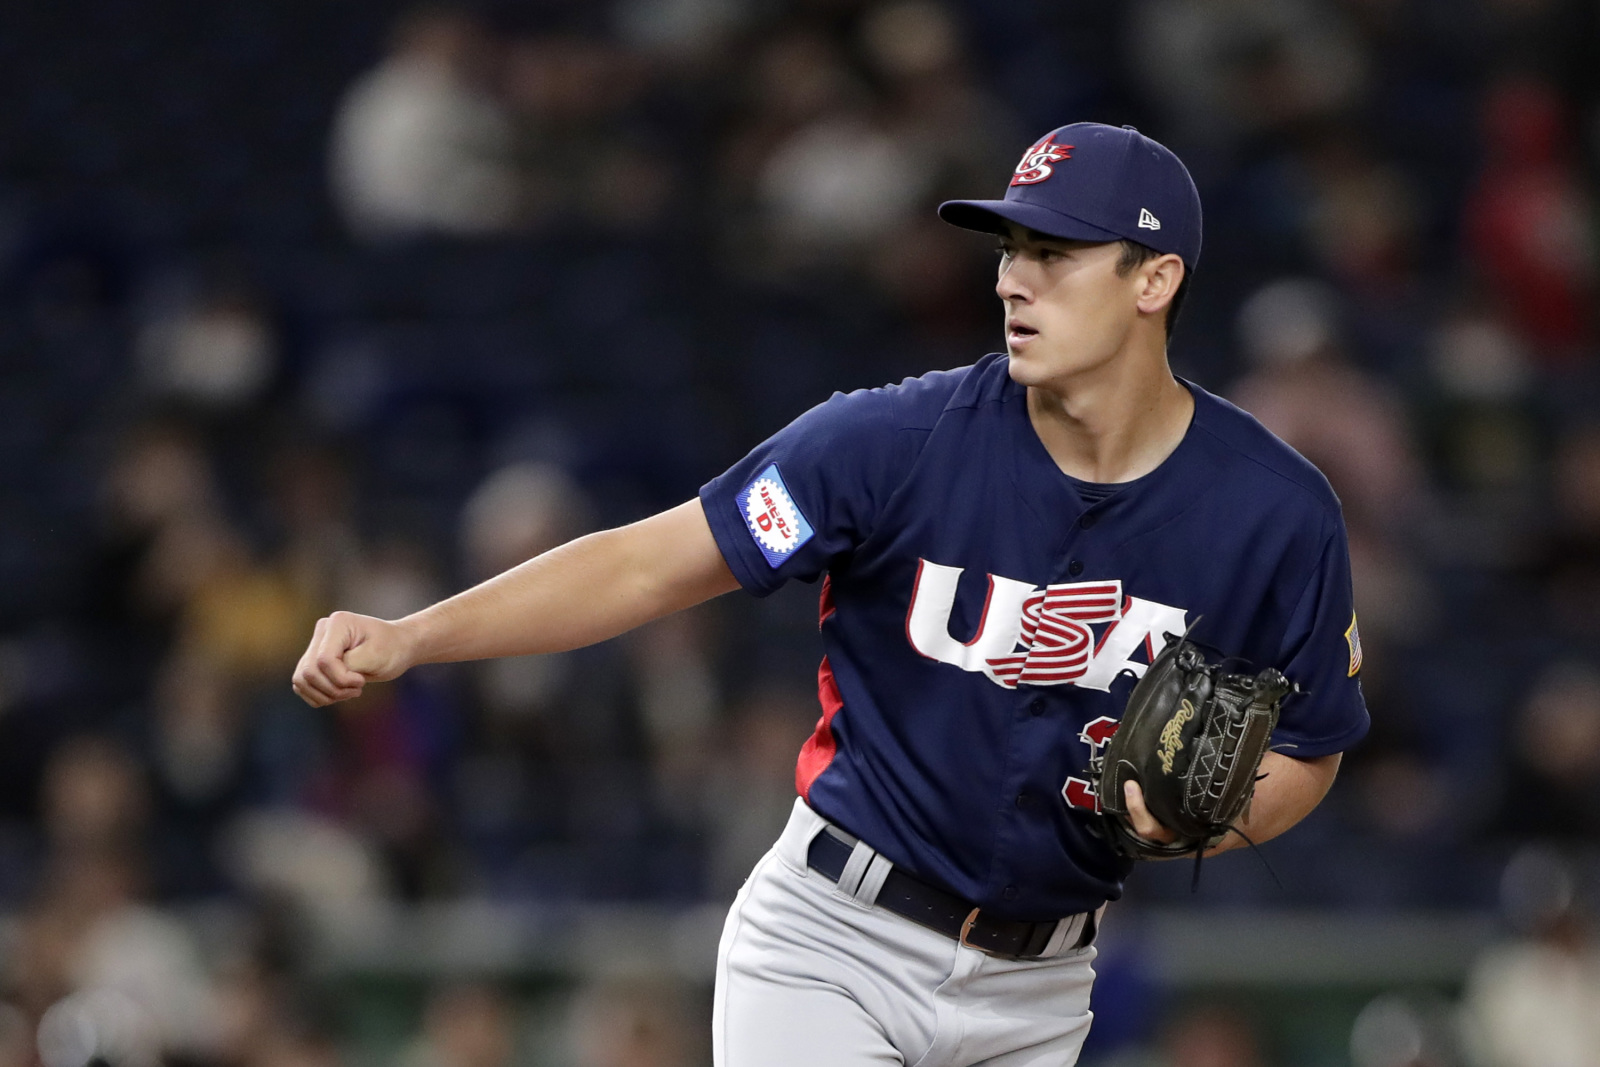 Red Sox prospect Noah Song is the future ace we've been waiting for